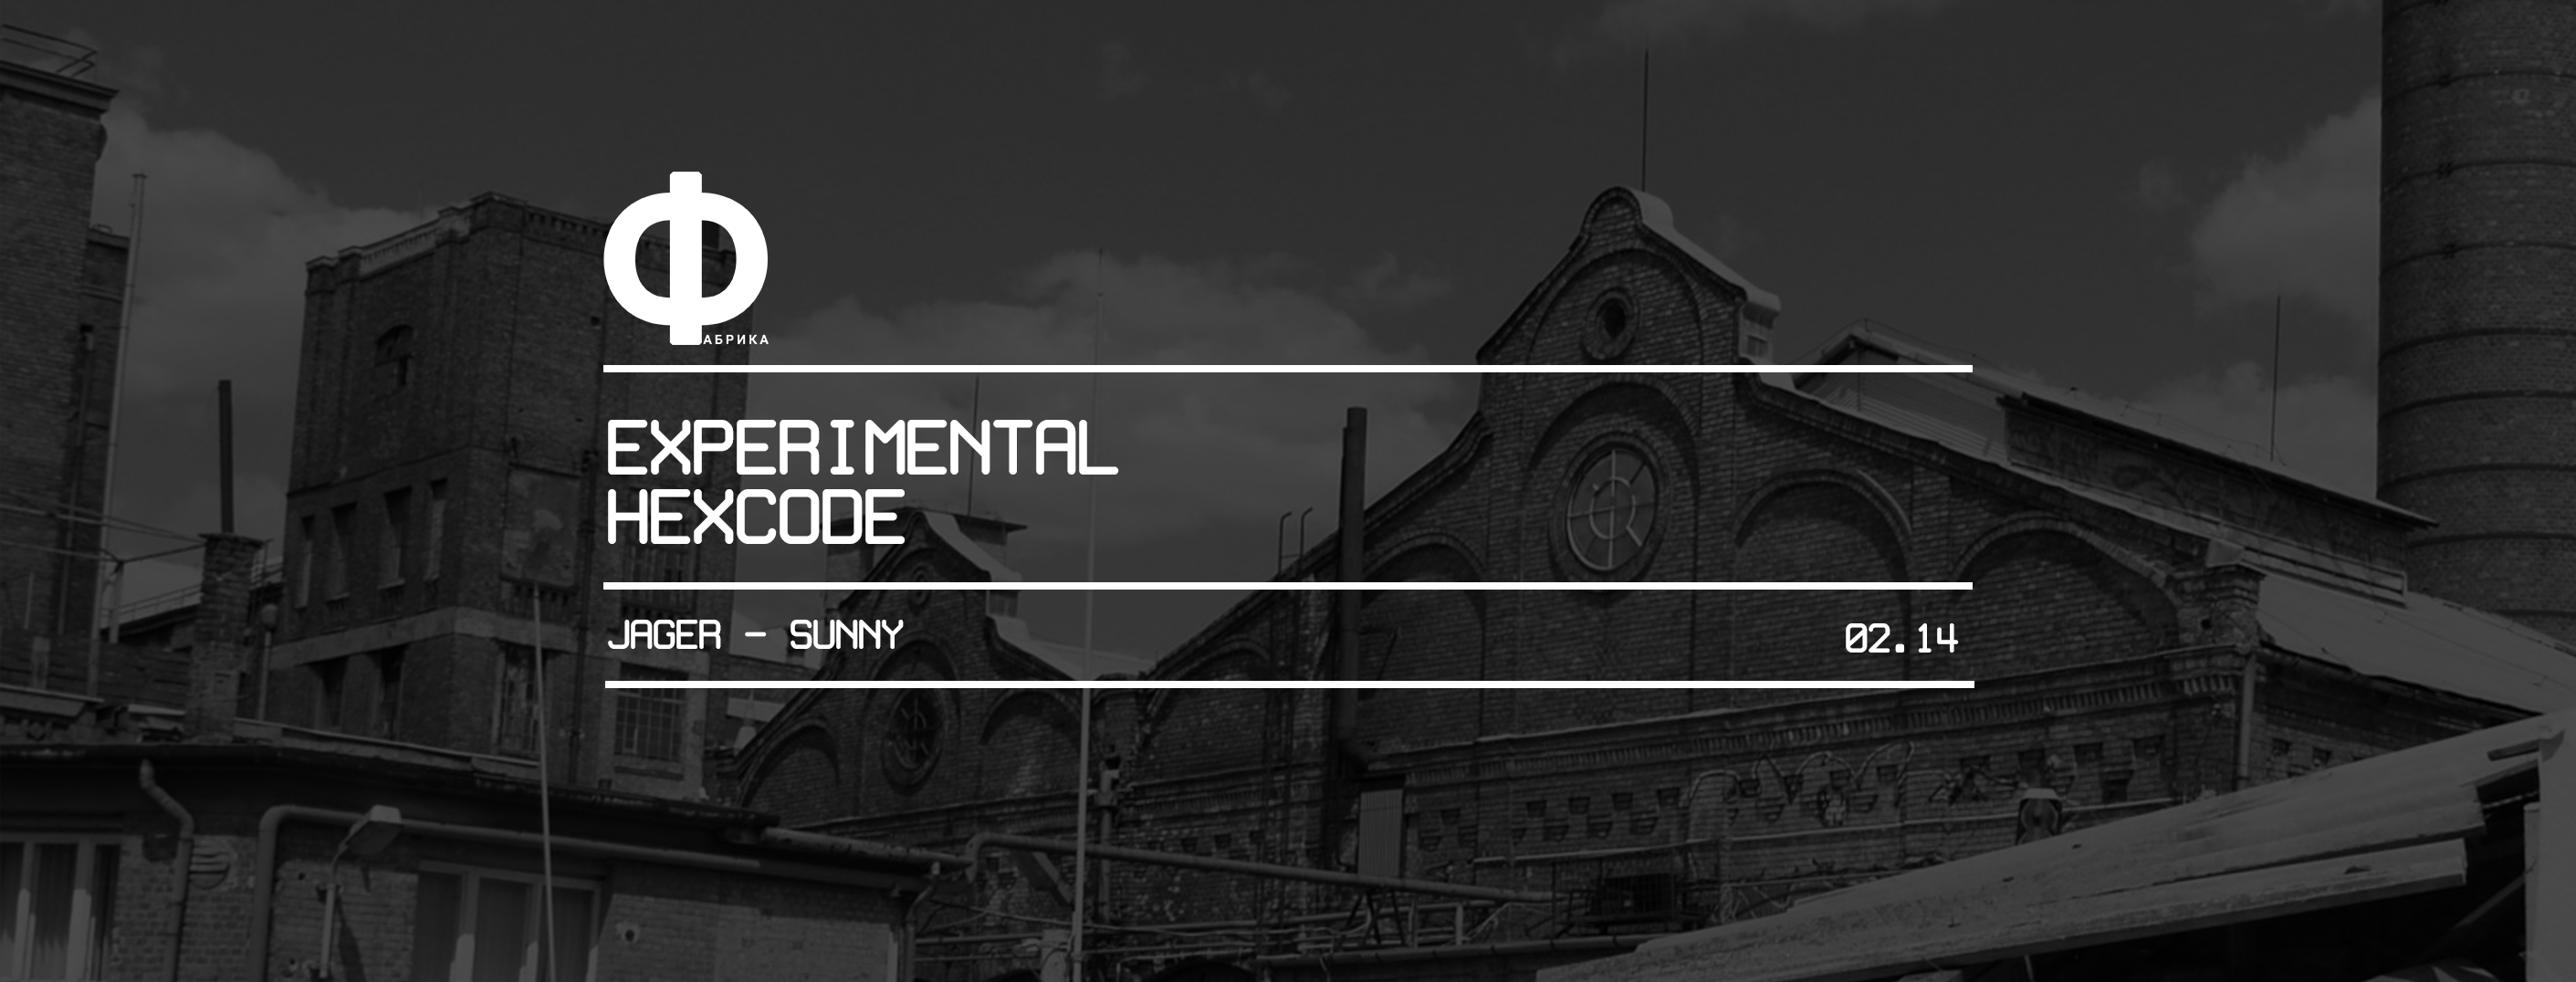 02.14 EXPERIMENTAL LARMOS minimal art family maf techno magyar dj fabrika undeground klub